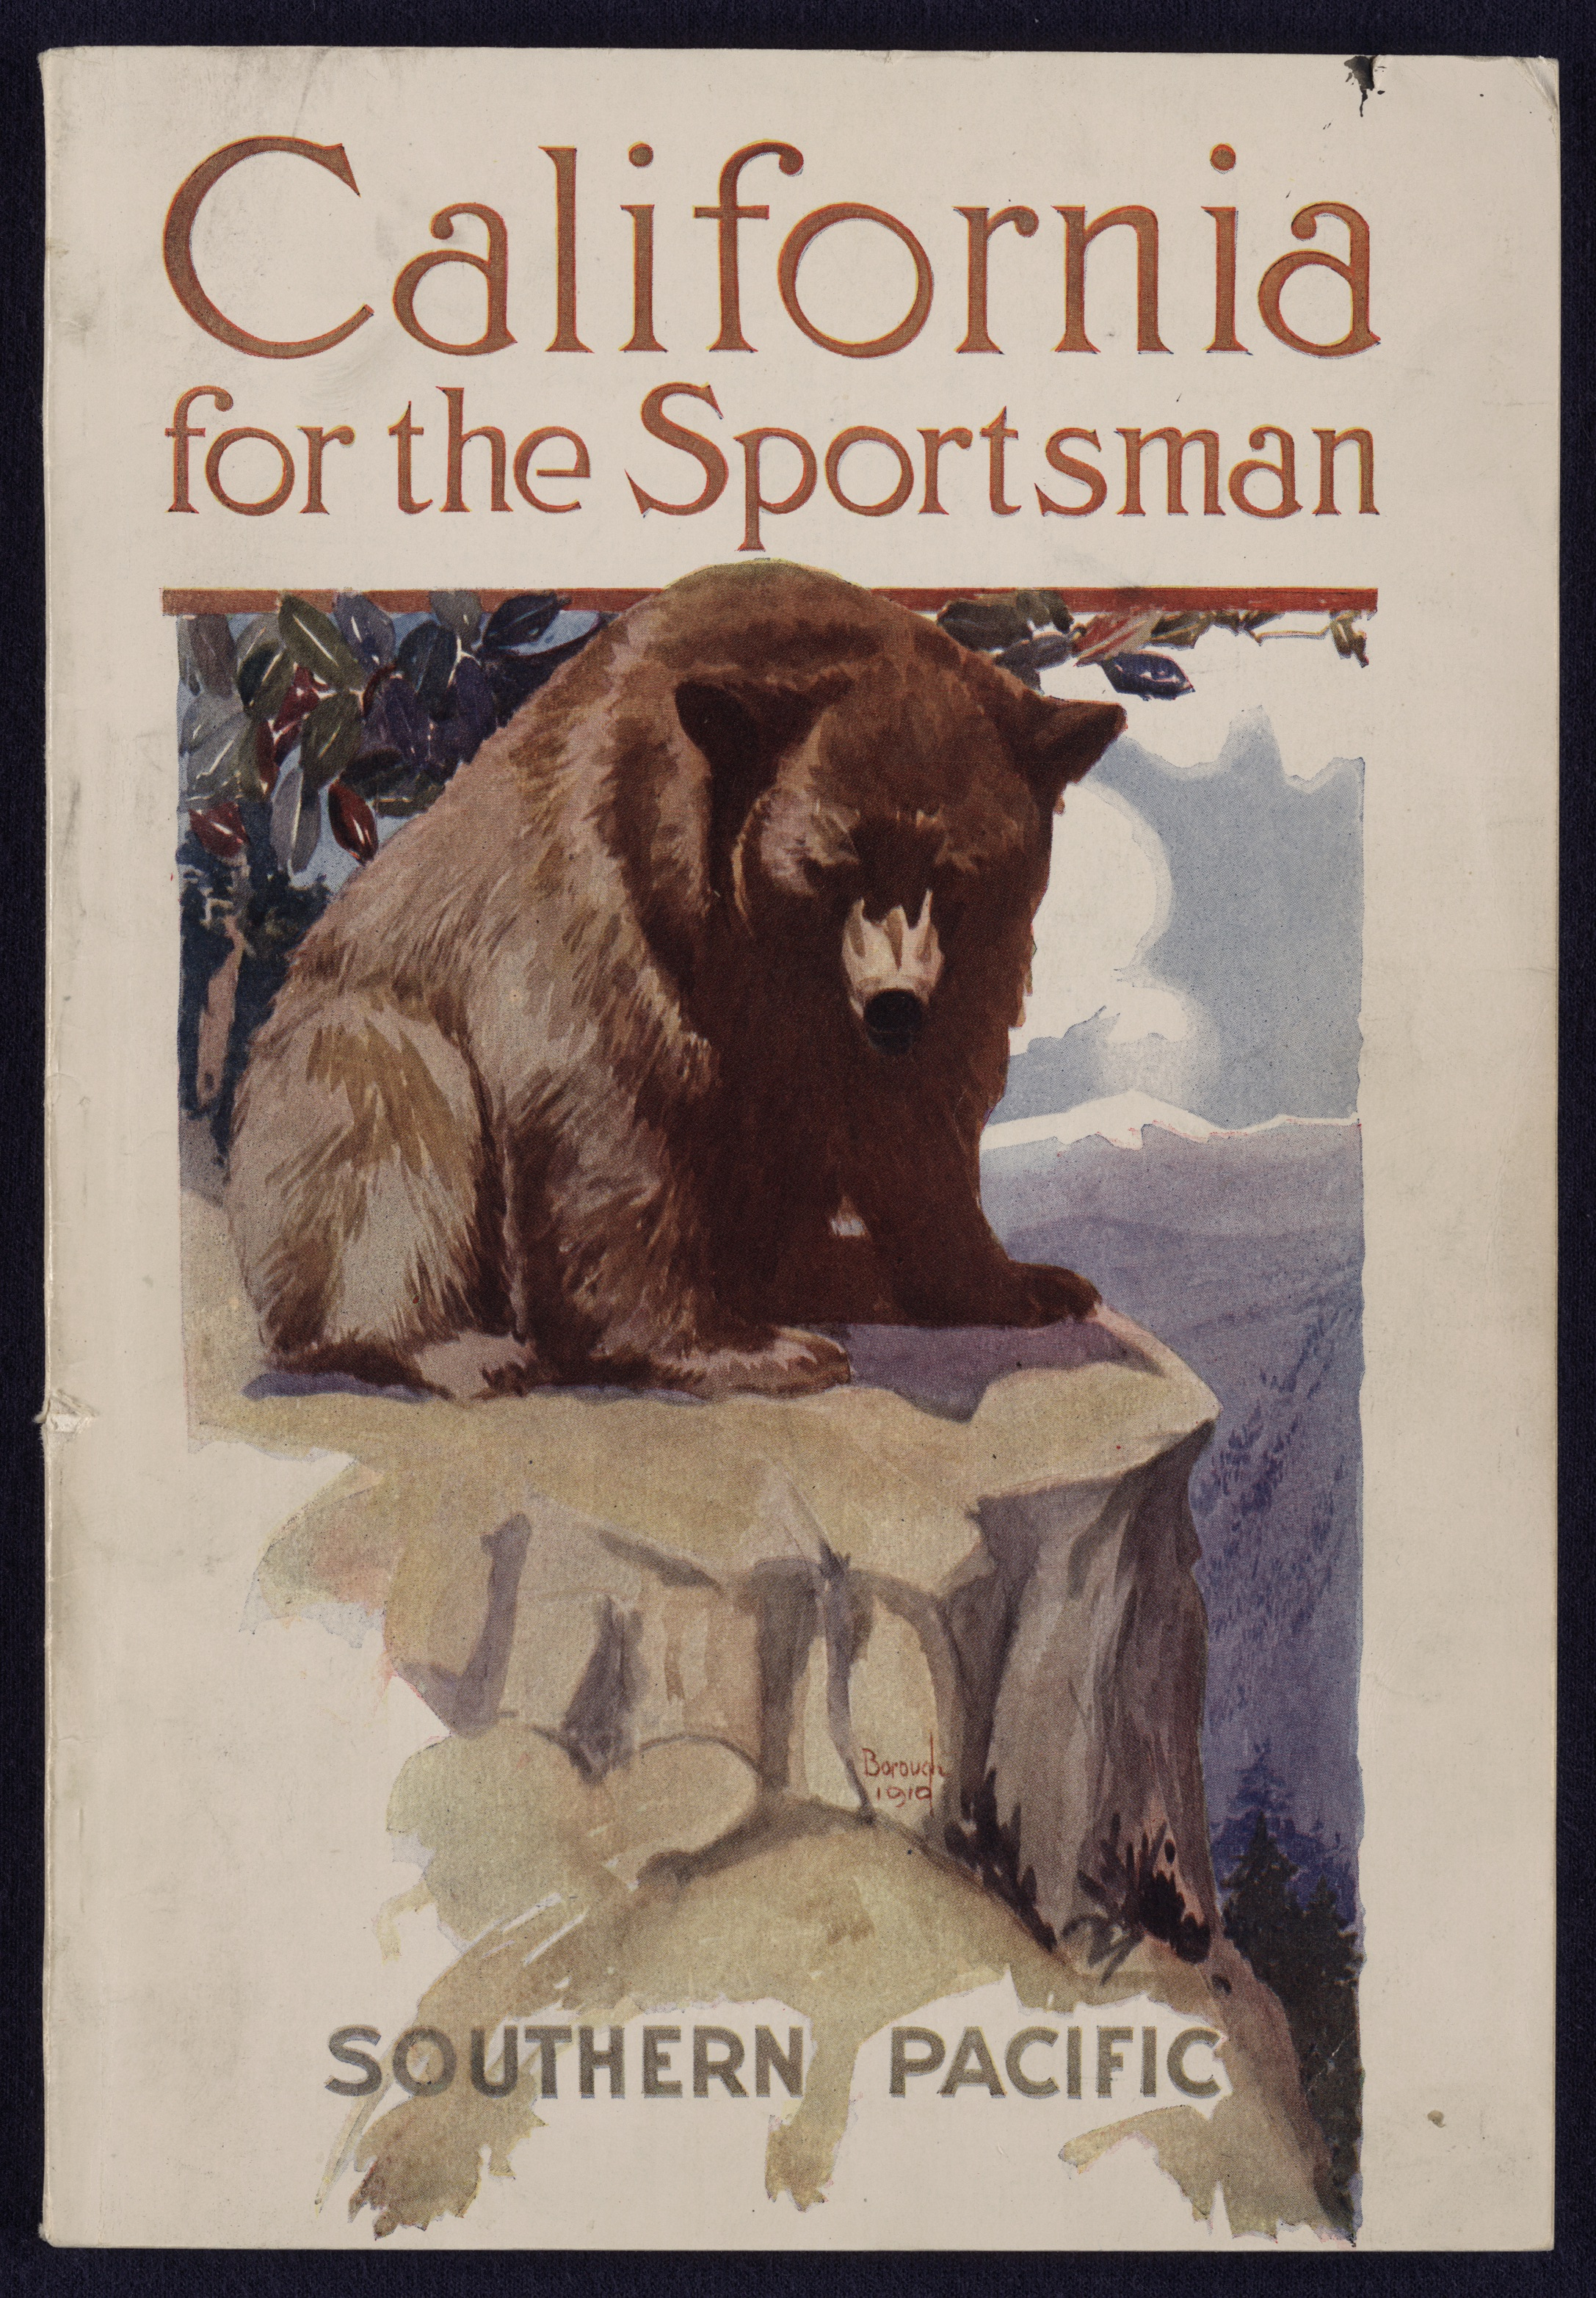 """Figure 1: """"California for the Sportsman""""… Compiled by A.M. Cumming & Allan Dunn (San Francisco: Southern Pacific Company, 1911). Source: U.S. Library of Congress."""